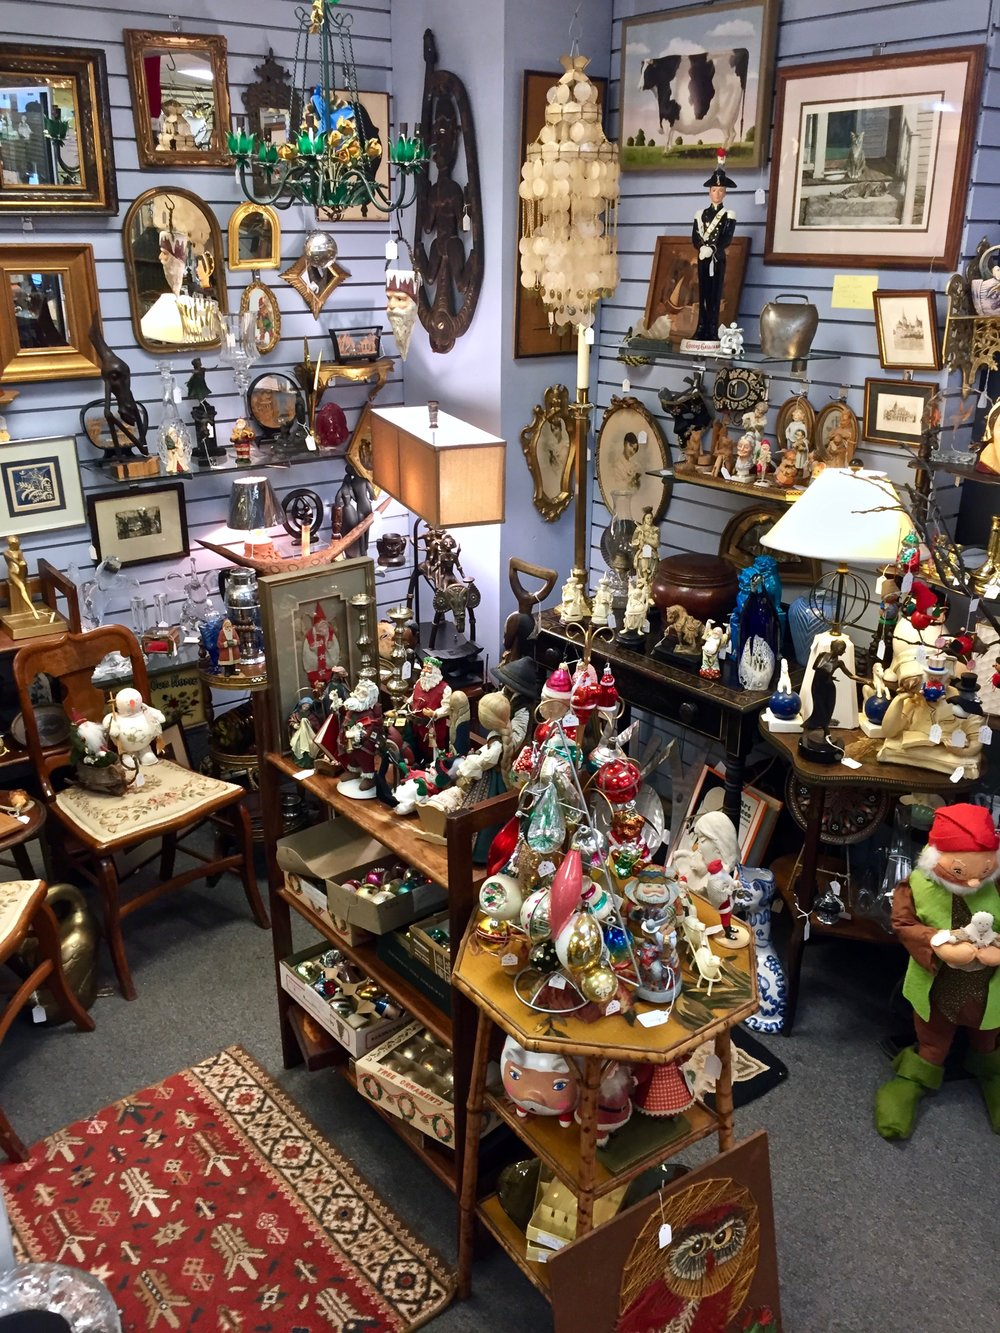 TOM & ARNOLD COLLECTIBLES & ANTIQUES   Tom Dwyer and Arnold Buchiane are both long time collectors and now enjoy sharing their finds and collections with others. Sculpture and unusual items are of special interest.